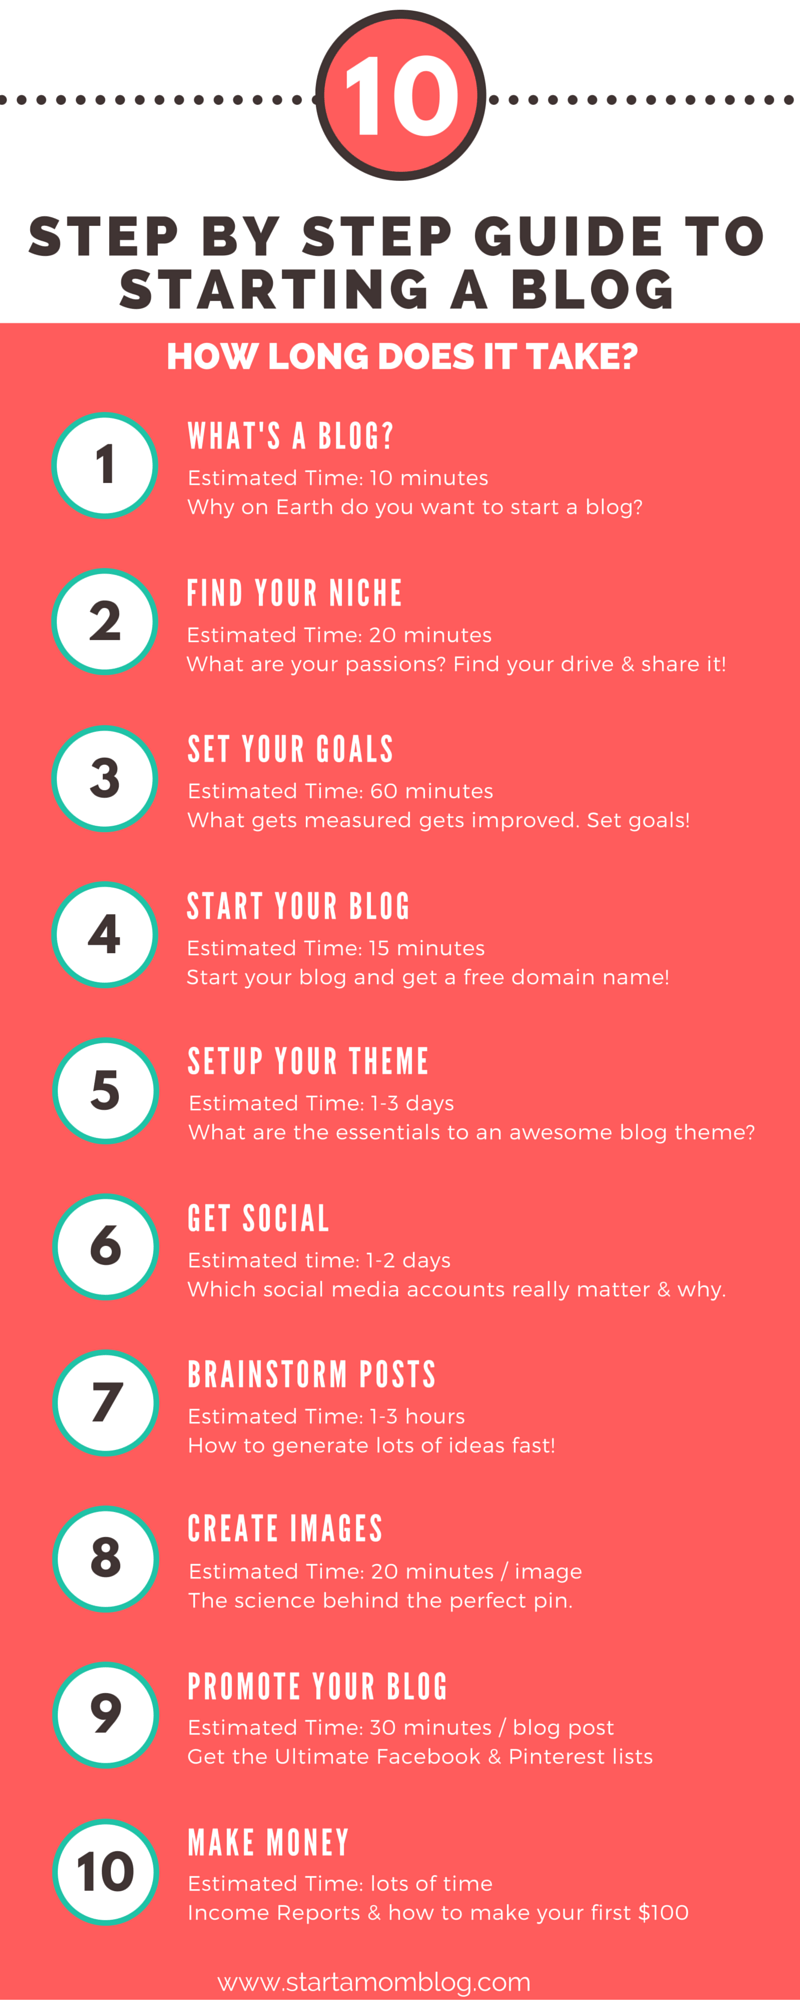 Free Resource on How to Start a Blog Step by Step Guide